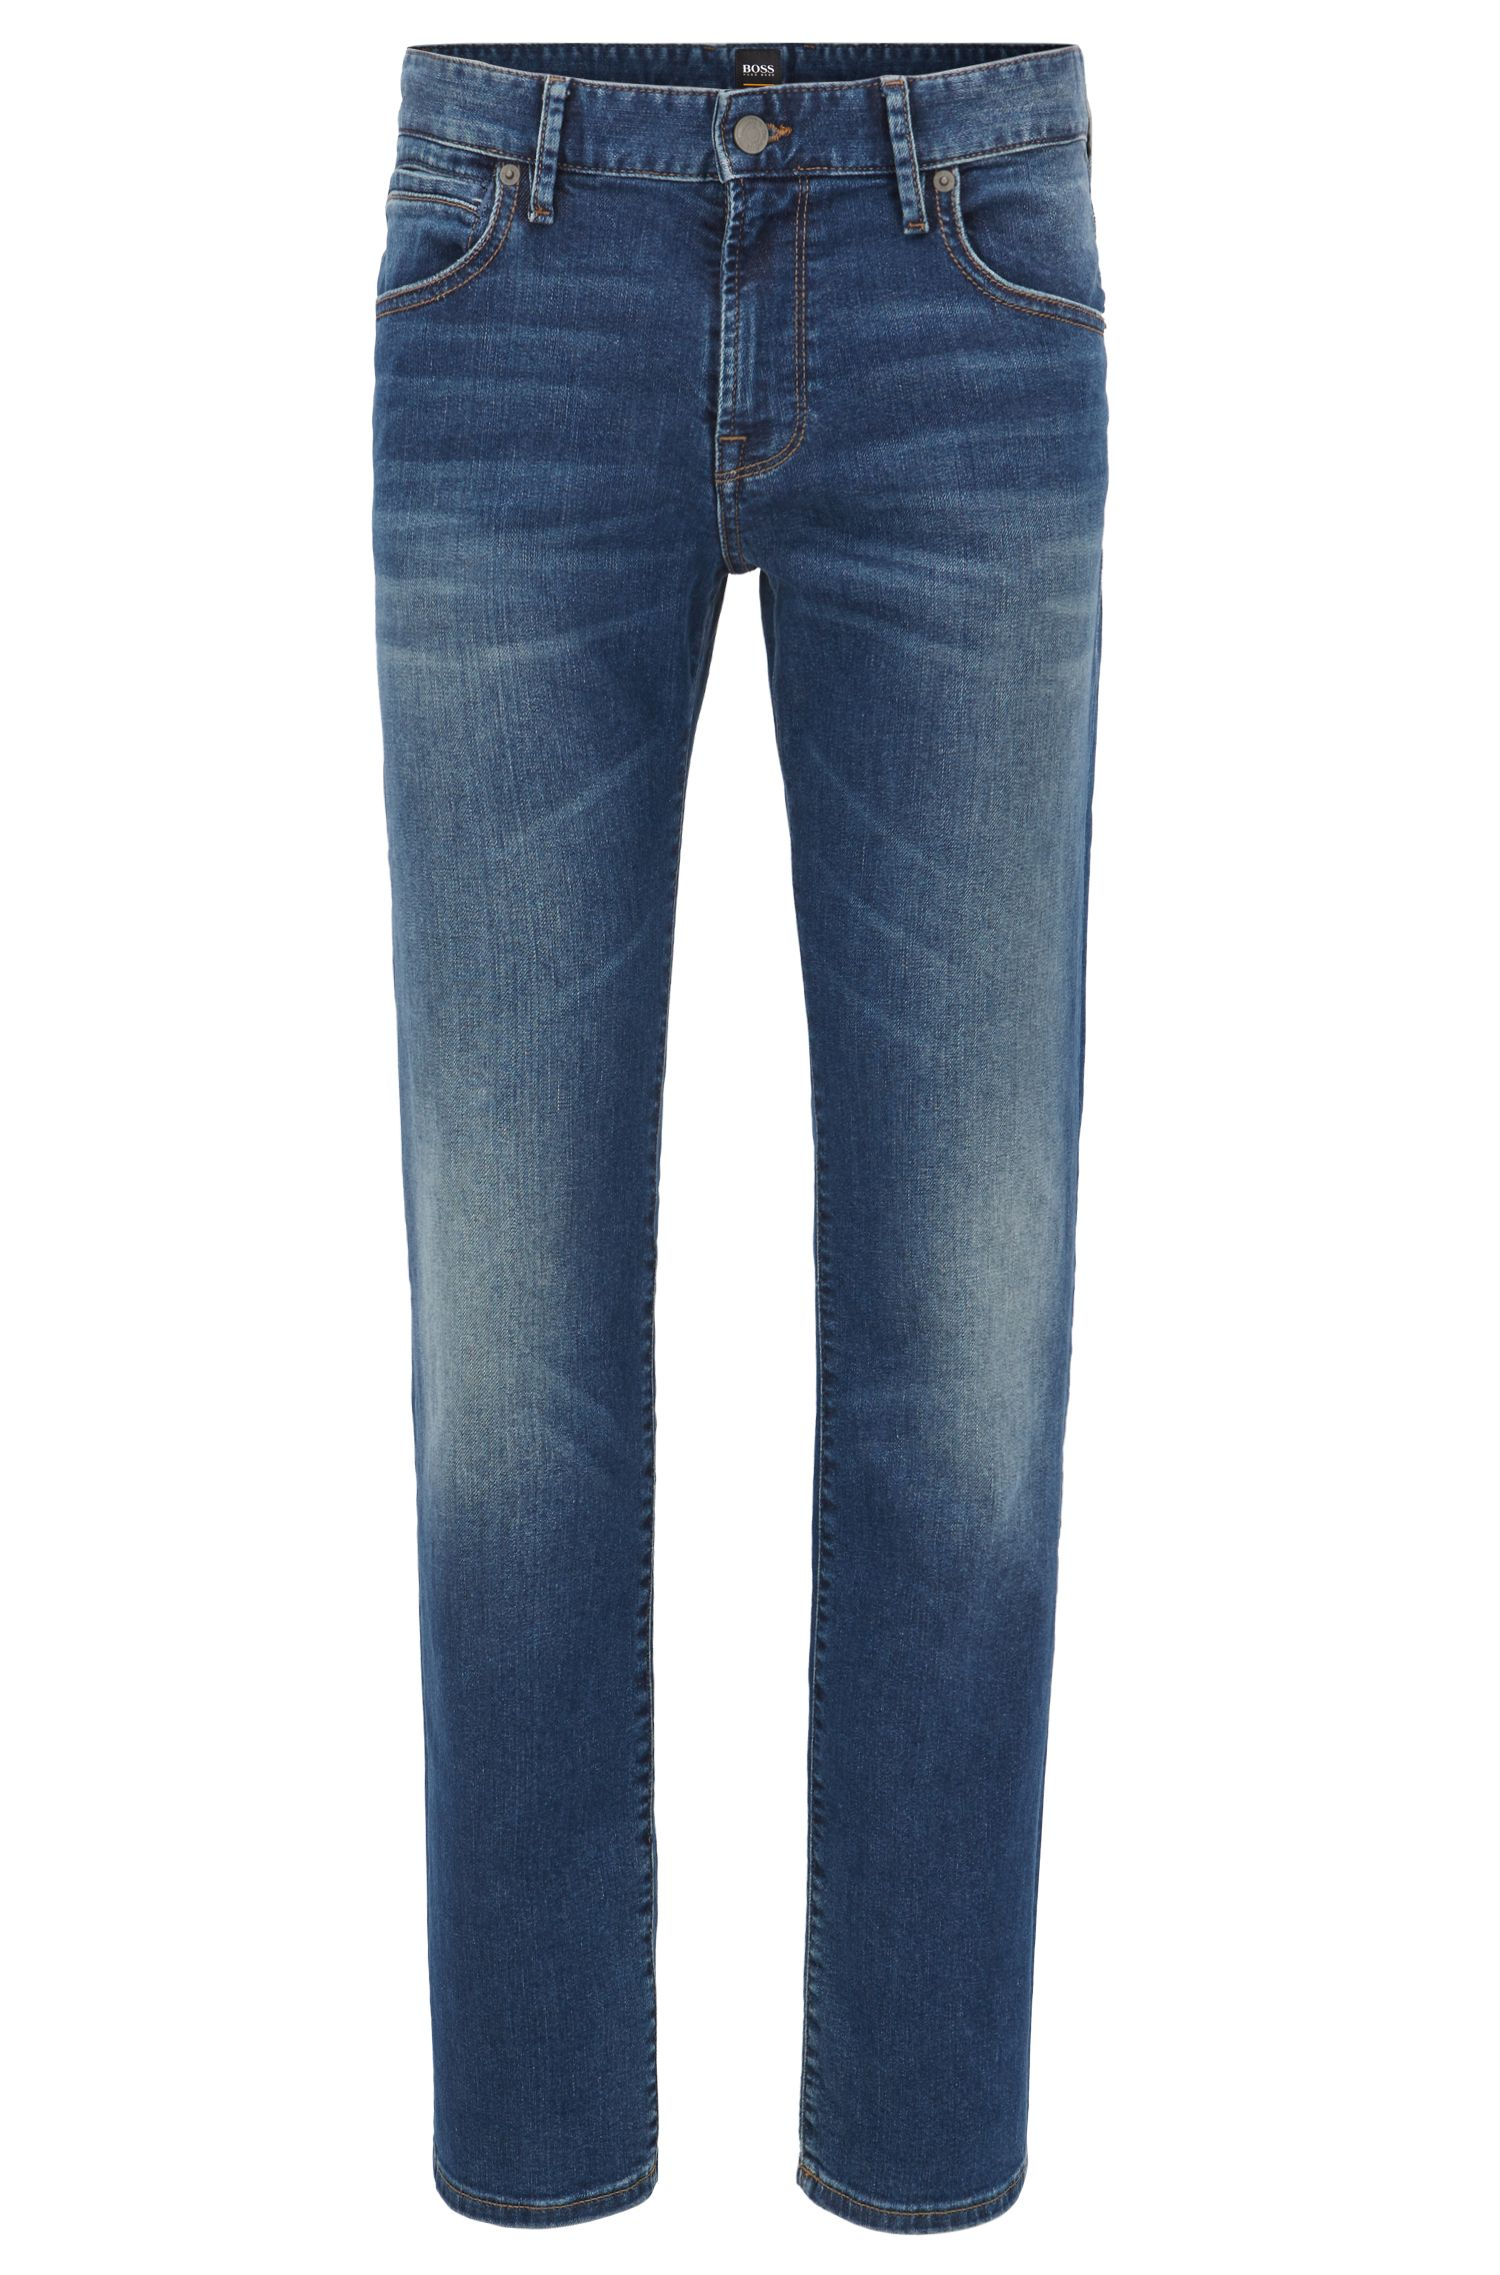 Regular-Fit Jeans aus indigofarbenem Used-Denim